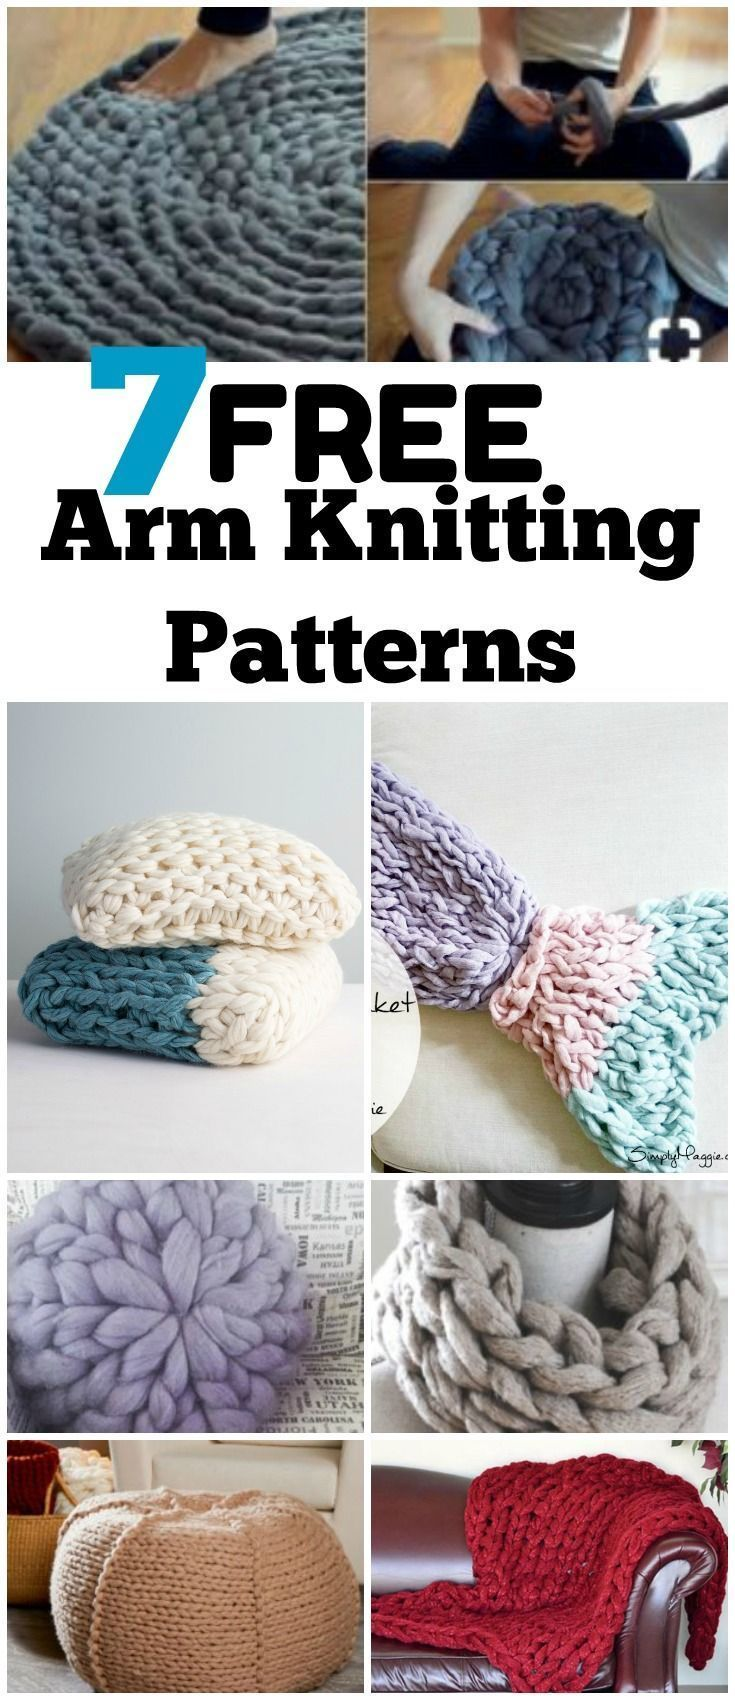 fbcfe3f94efe Arm Knitting Tutorial for 7 Free Chunky Knit Yarn Projects